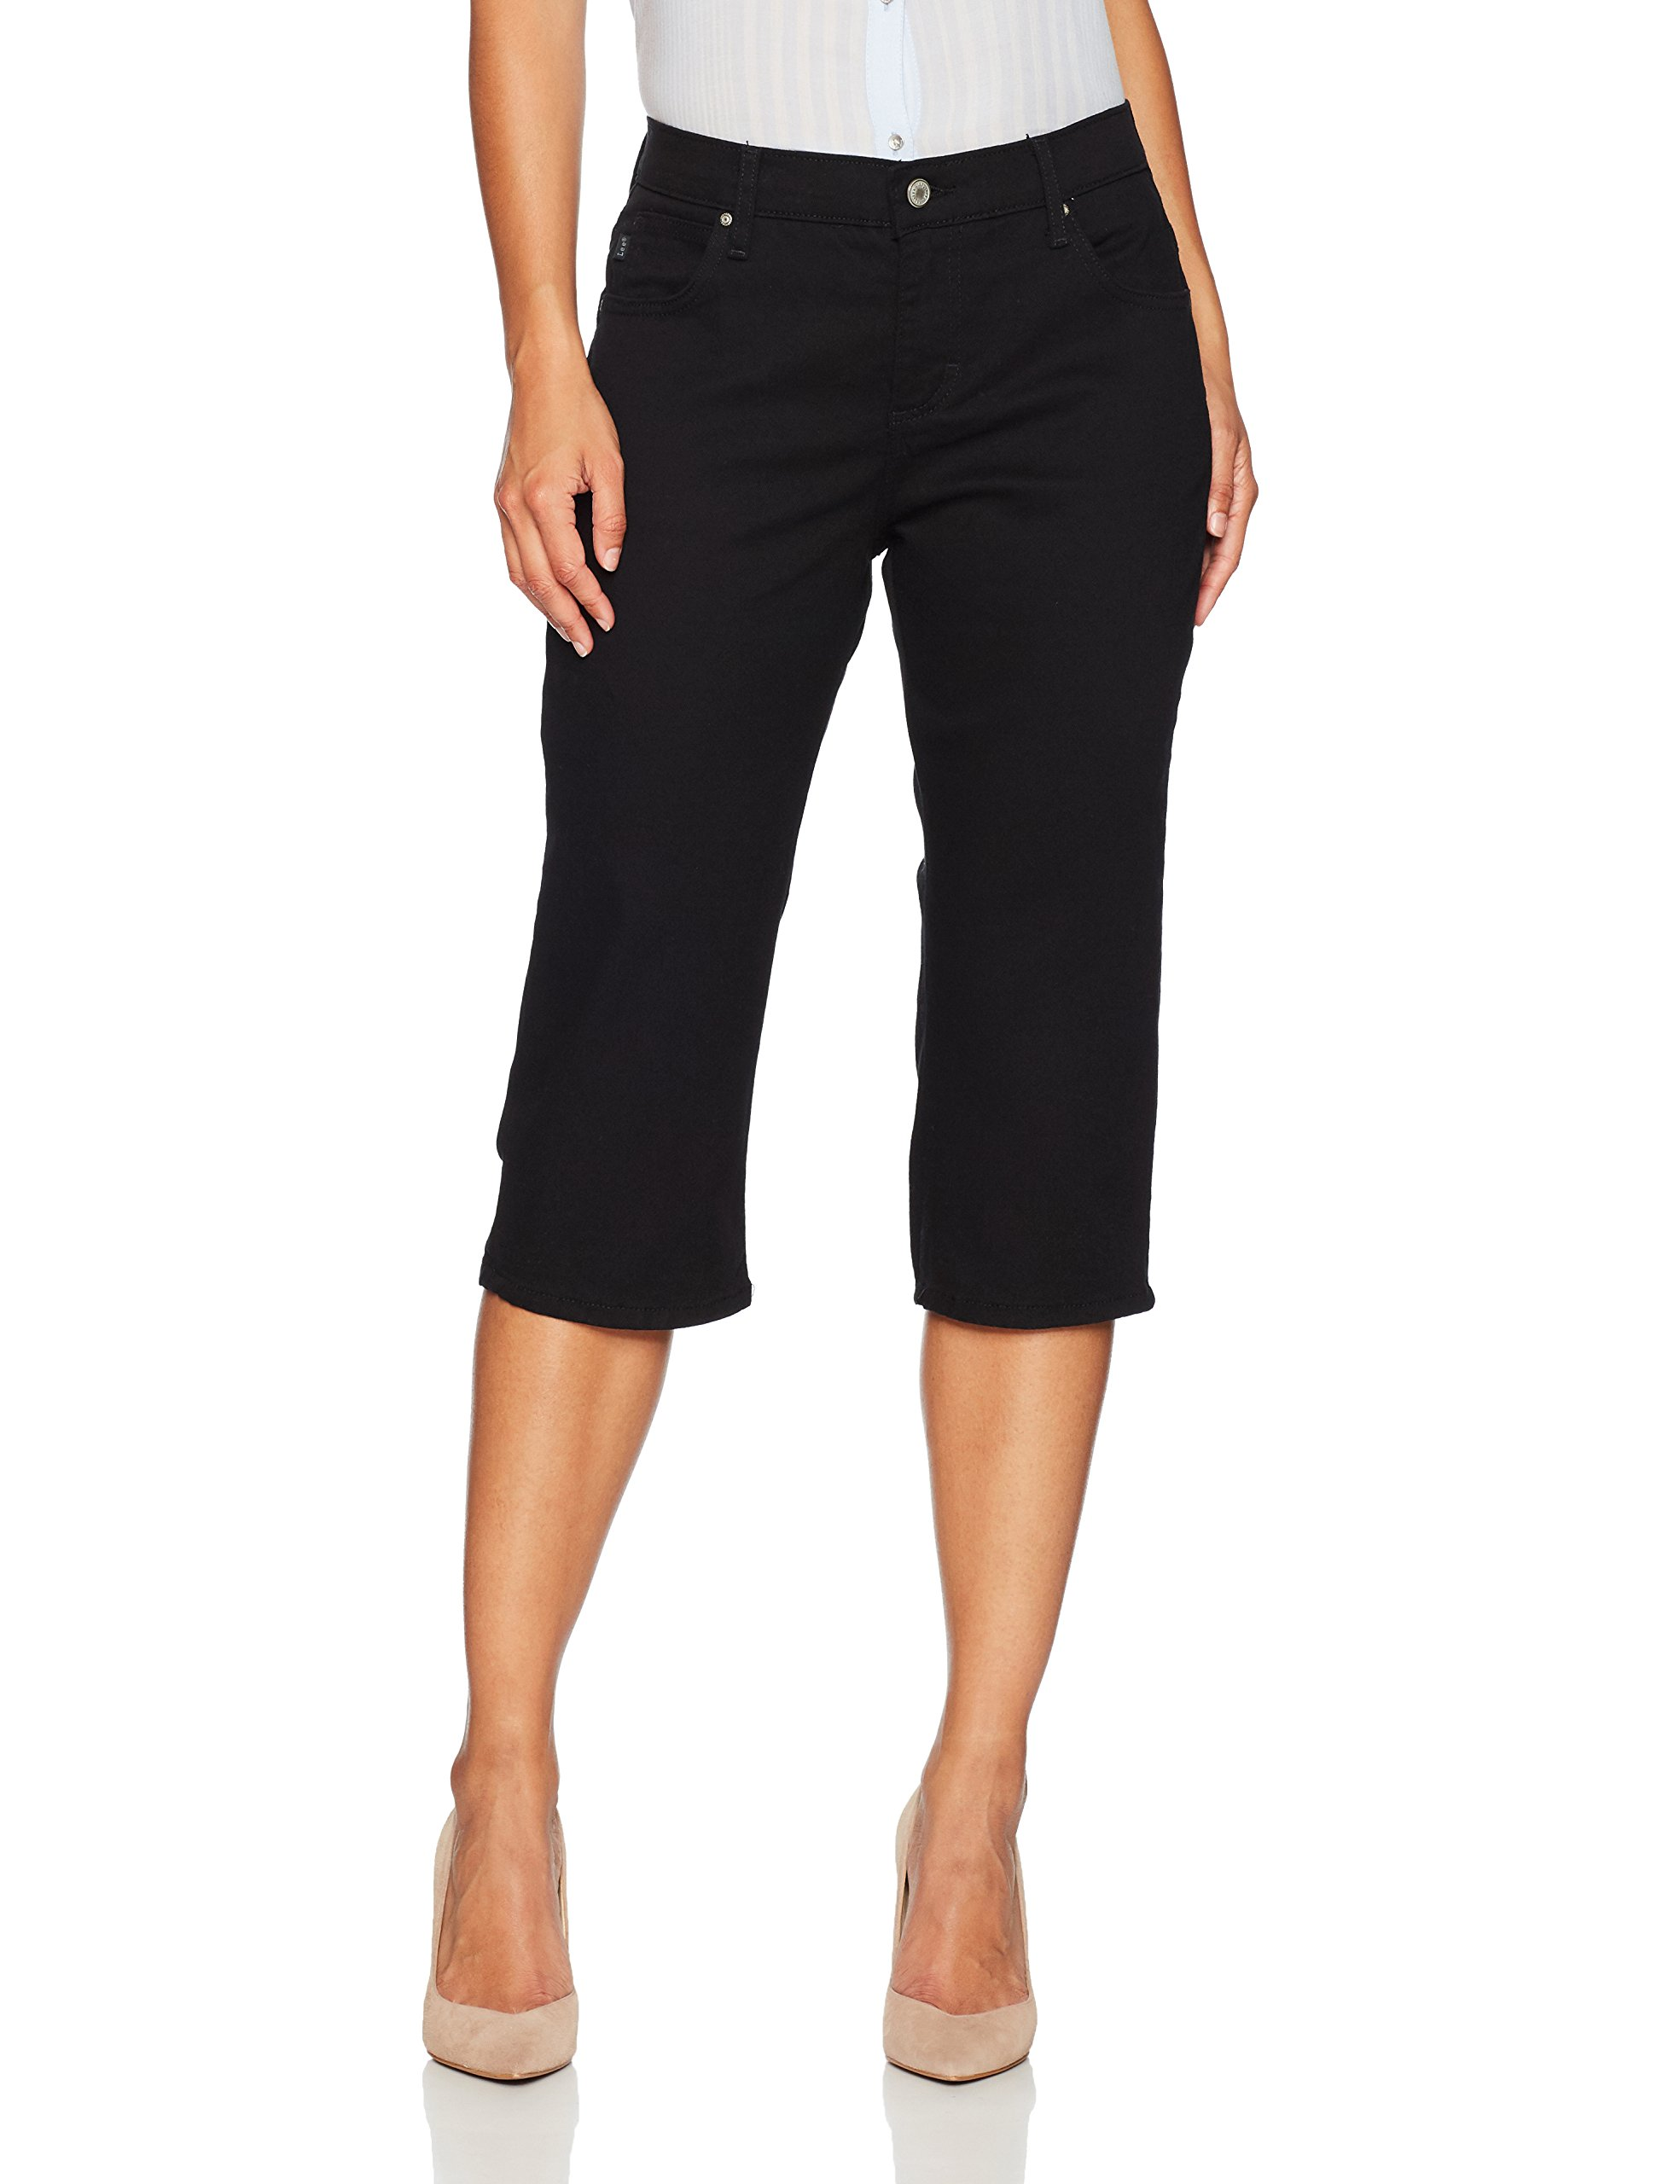 LEE Women's Petite Relaxed Fit Capri Pant, Black, 14